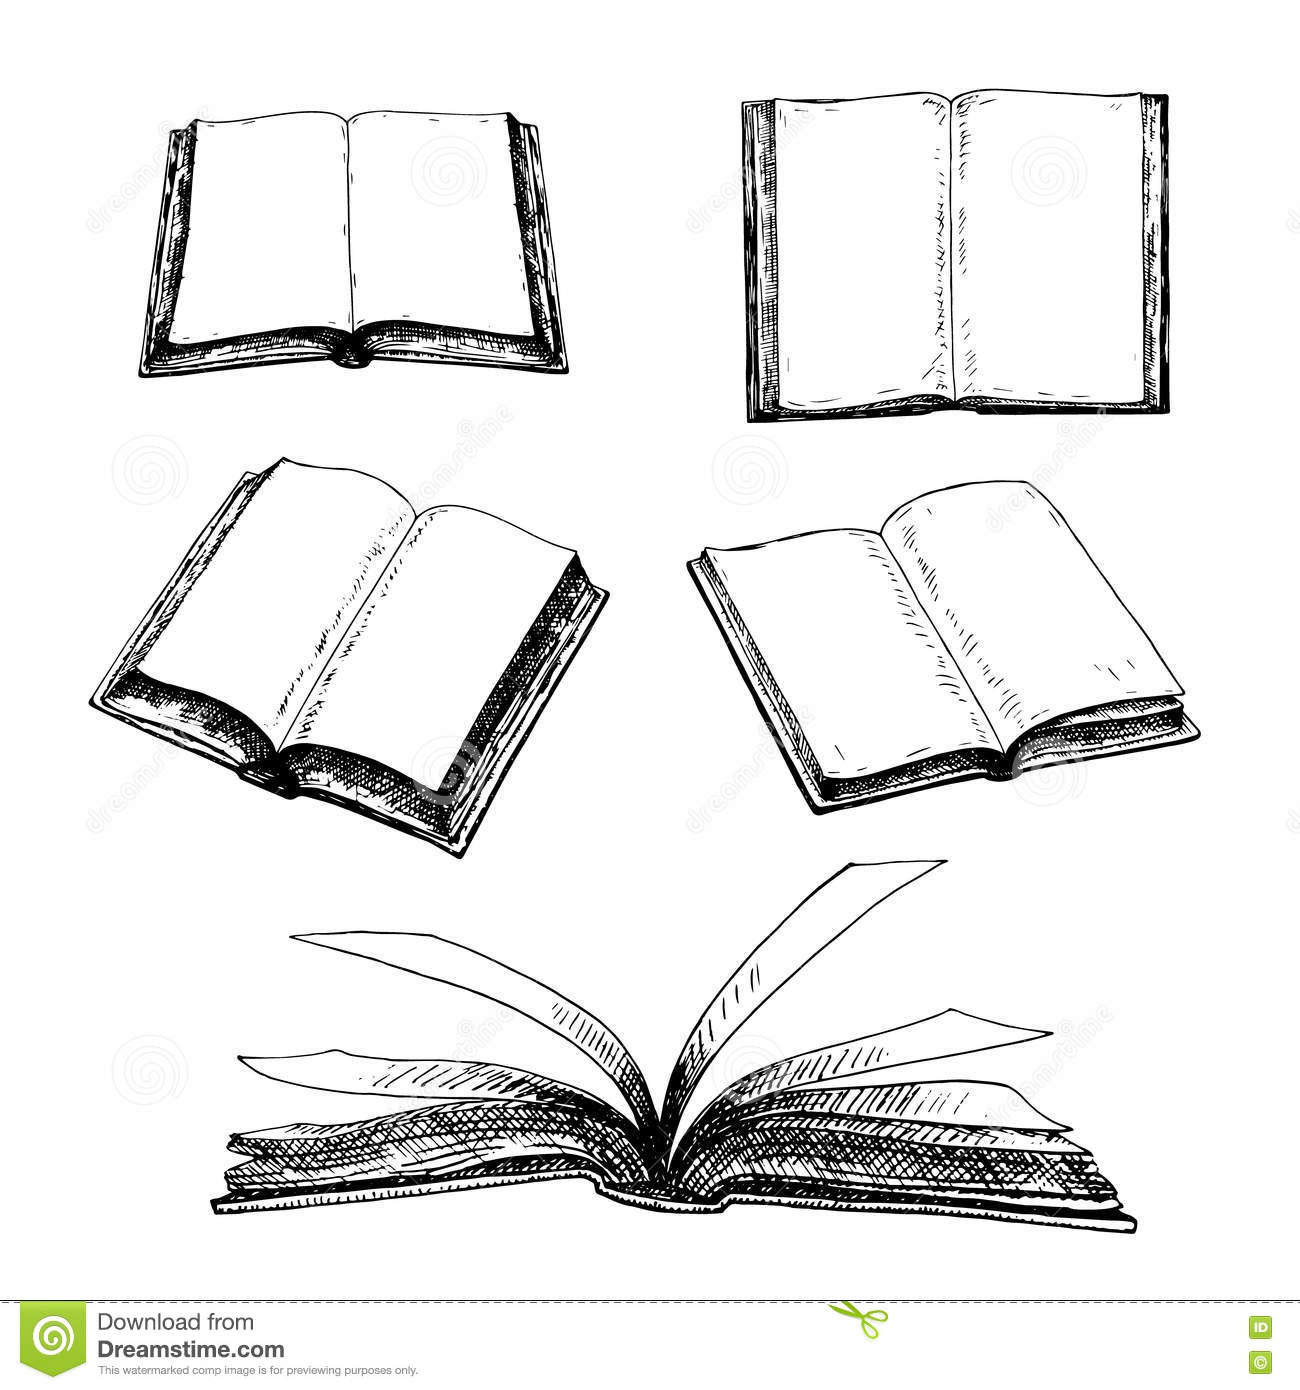 Drawing Lines With Core Graphics : Hand drawn set of books stock vector illustration